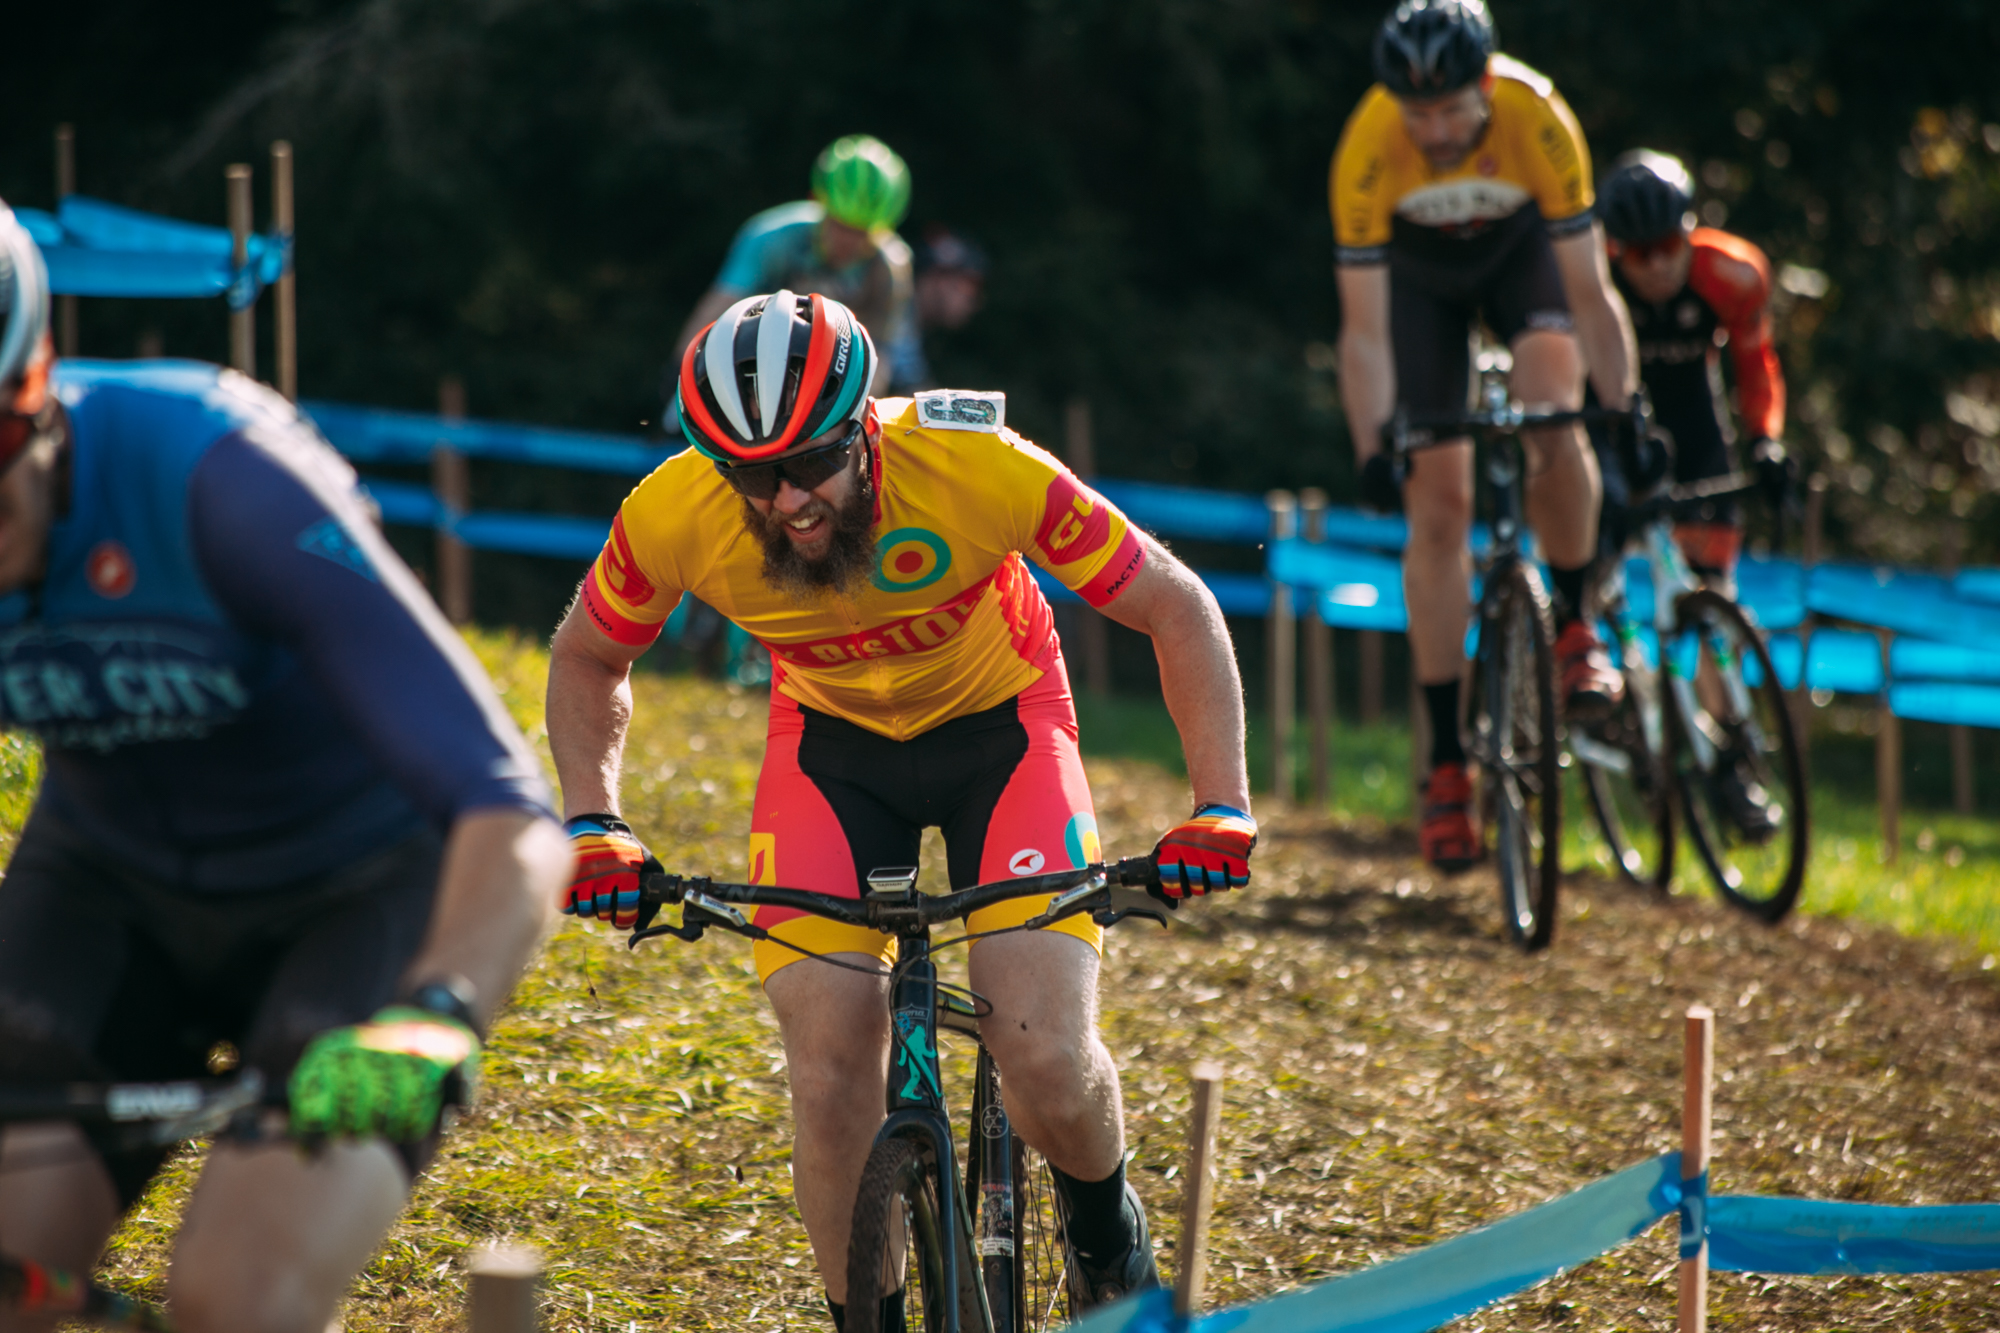 Cyclocross18_CCCX_RainierHS-85-mettlecycling.jpg